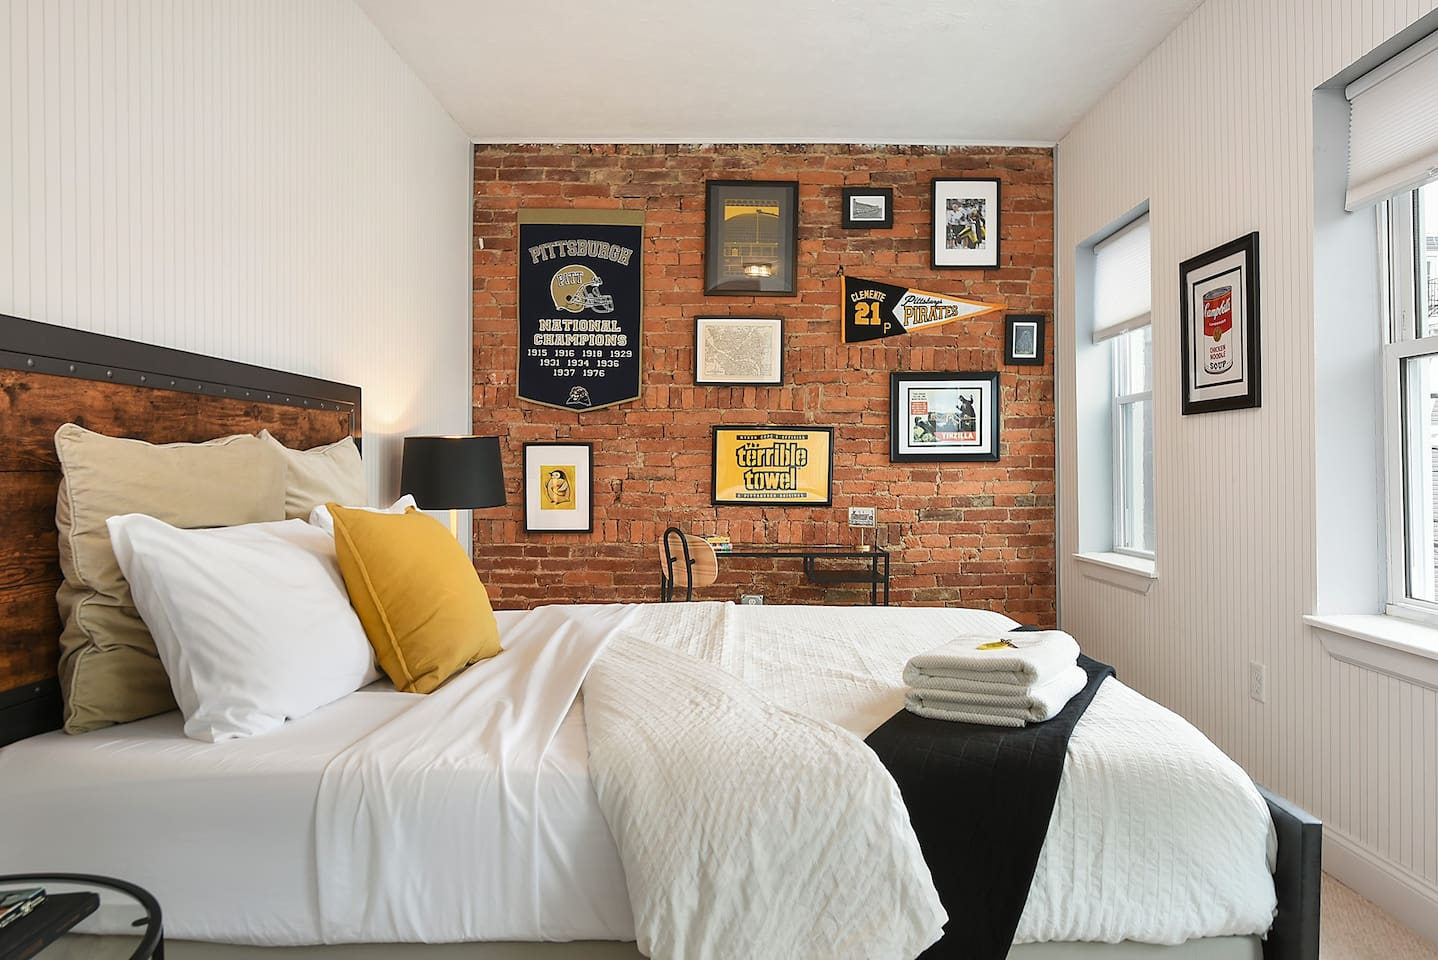 Your Pittsburgh Home Away From Home! This room is an ode to all things 'Burgh. If you're a sports lover, history buff, or a first-timer & want to get familiar with Pittsburgh - this room's got yinz covered!